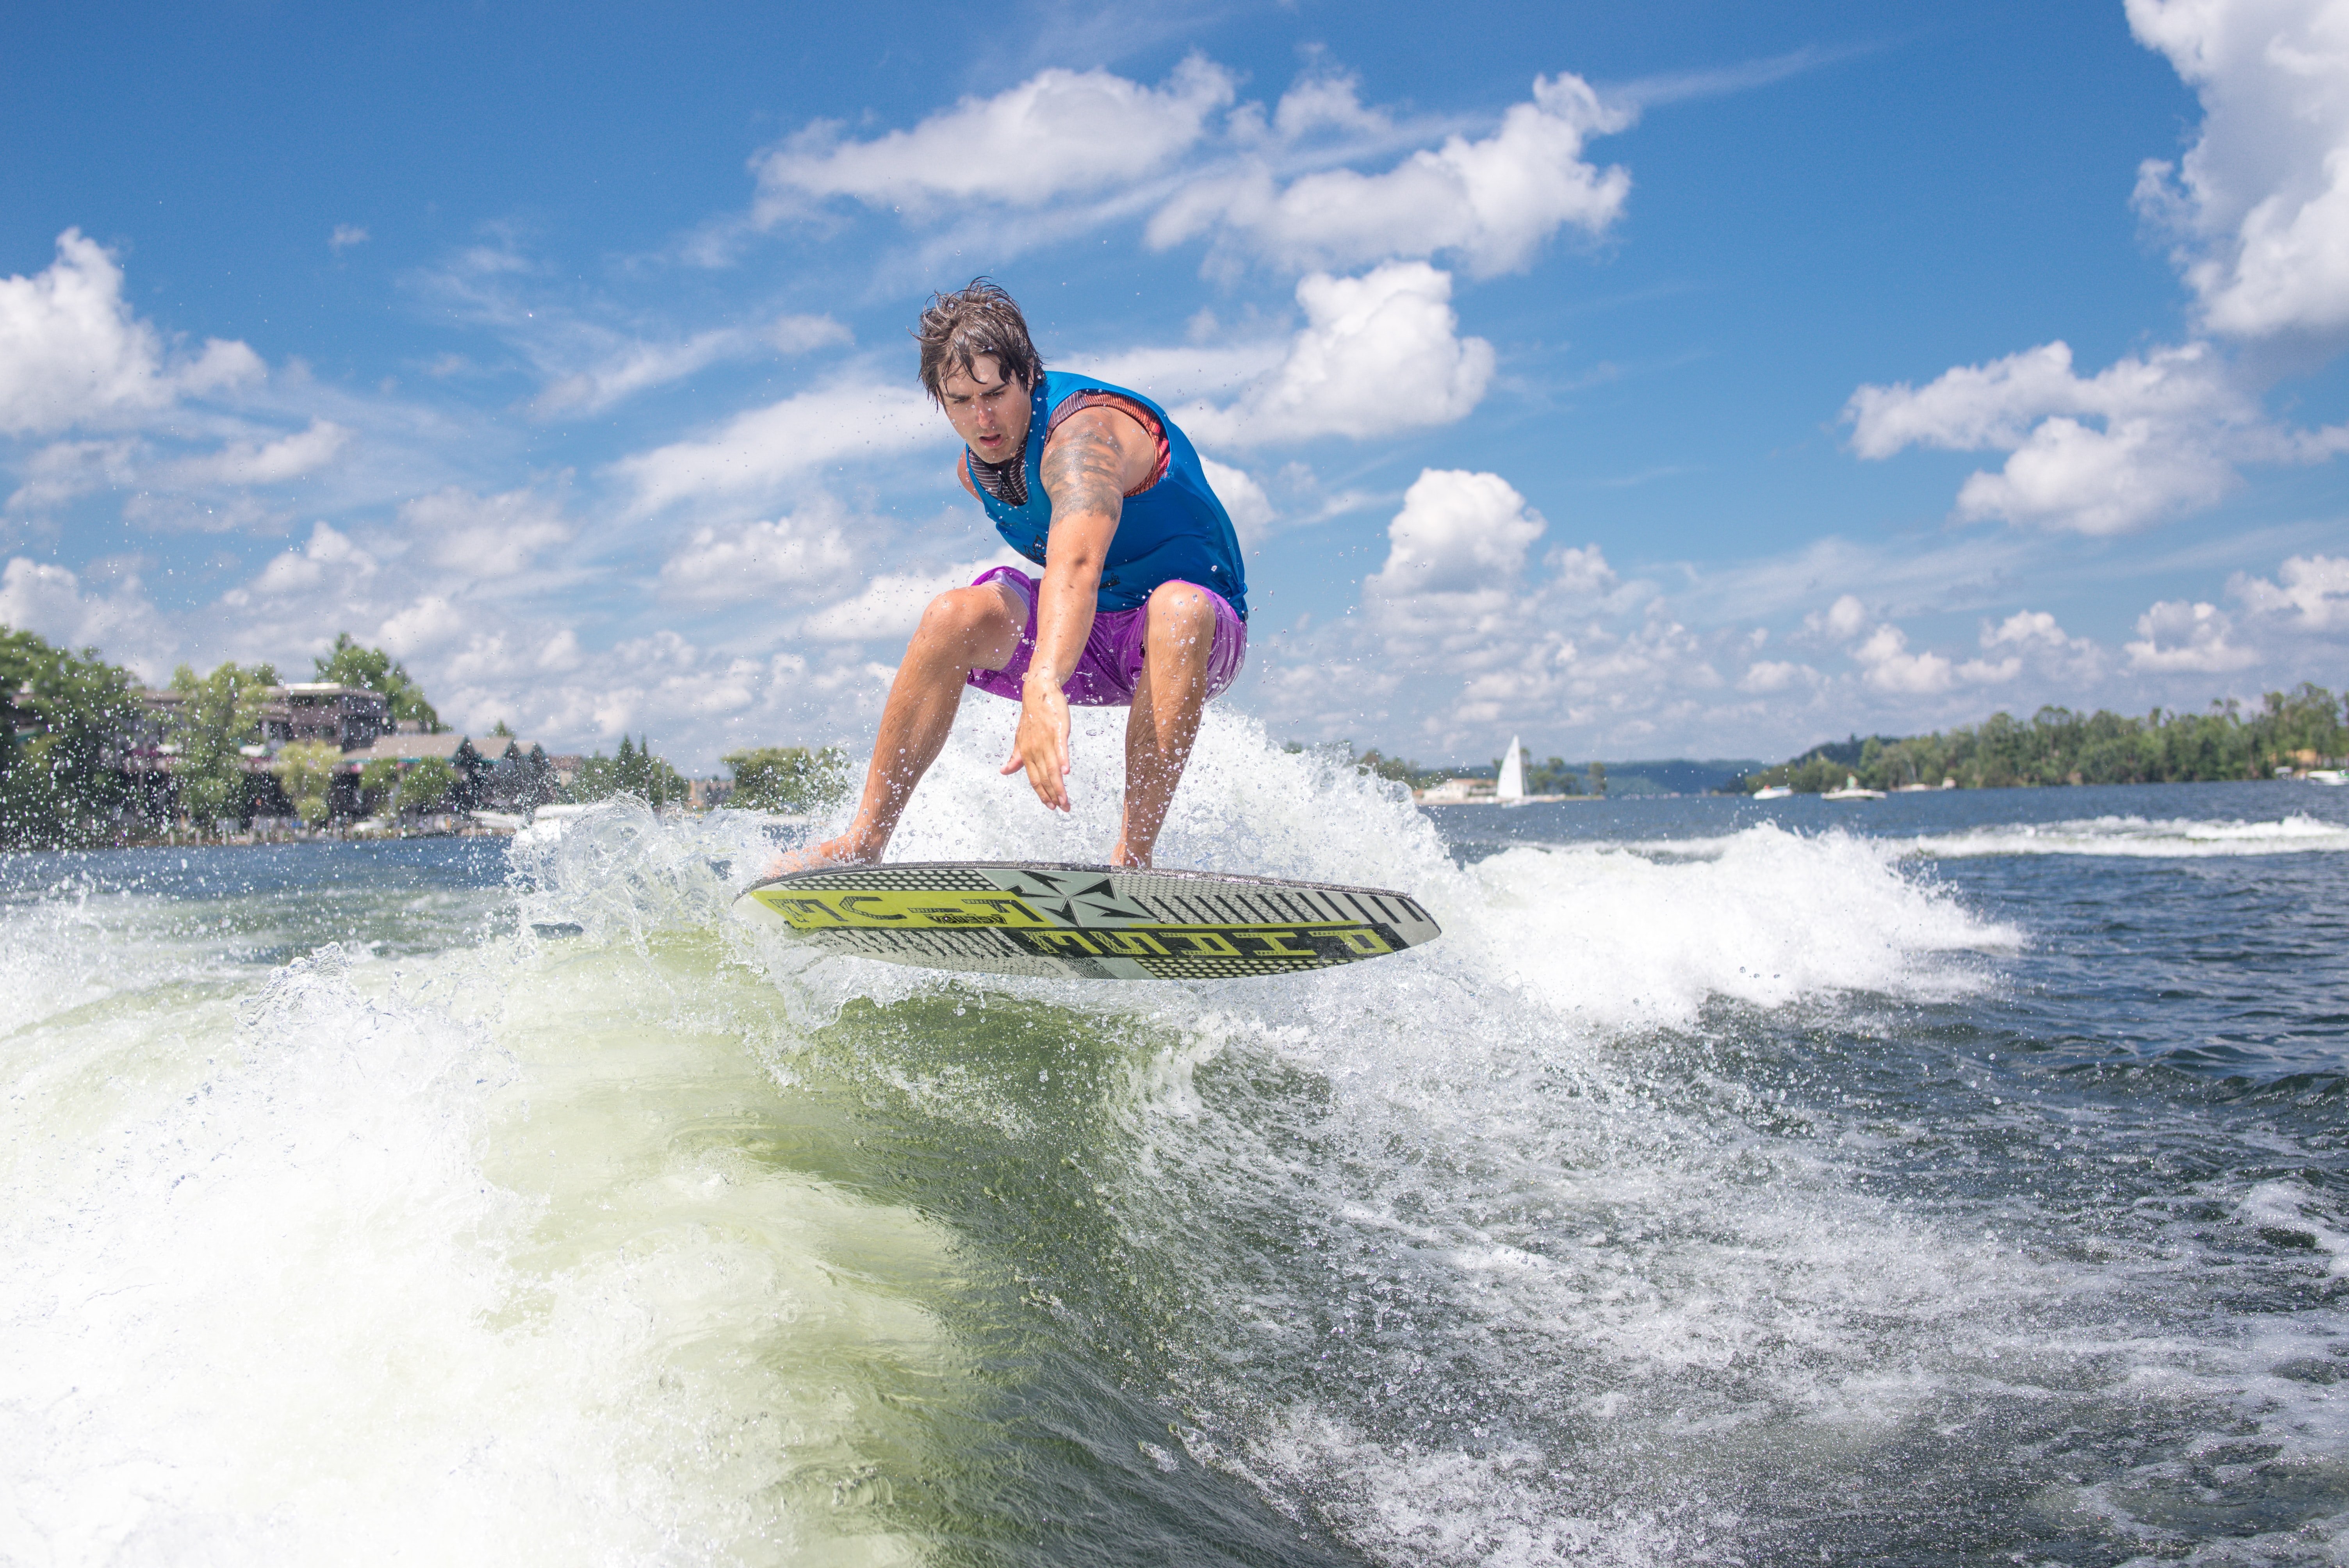 A man surfing the ocean at Gull Lake